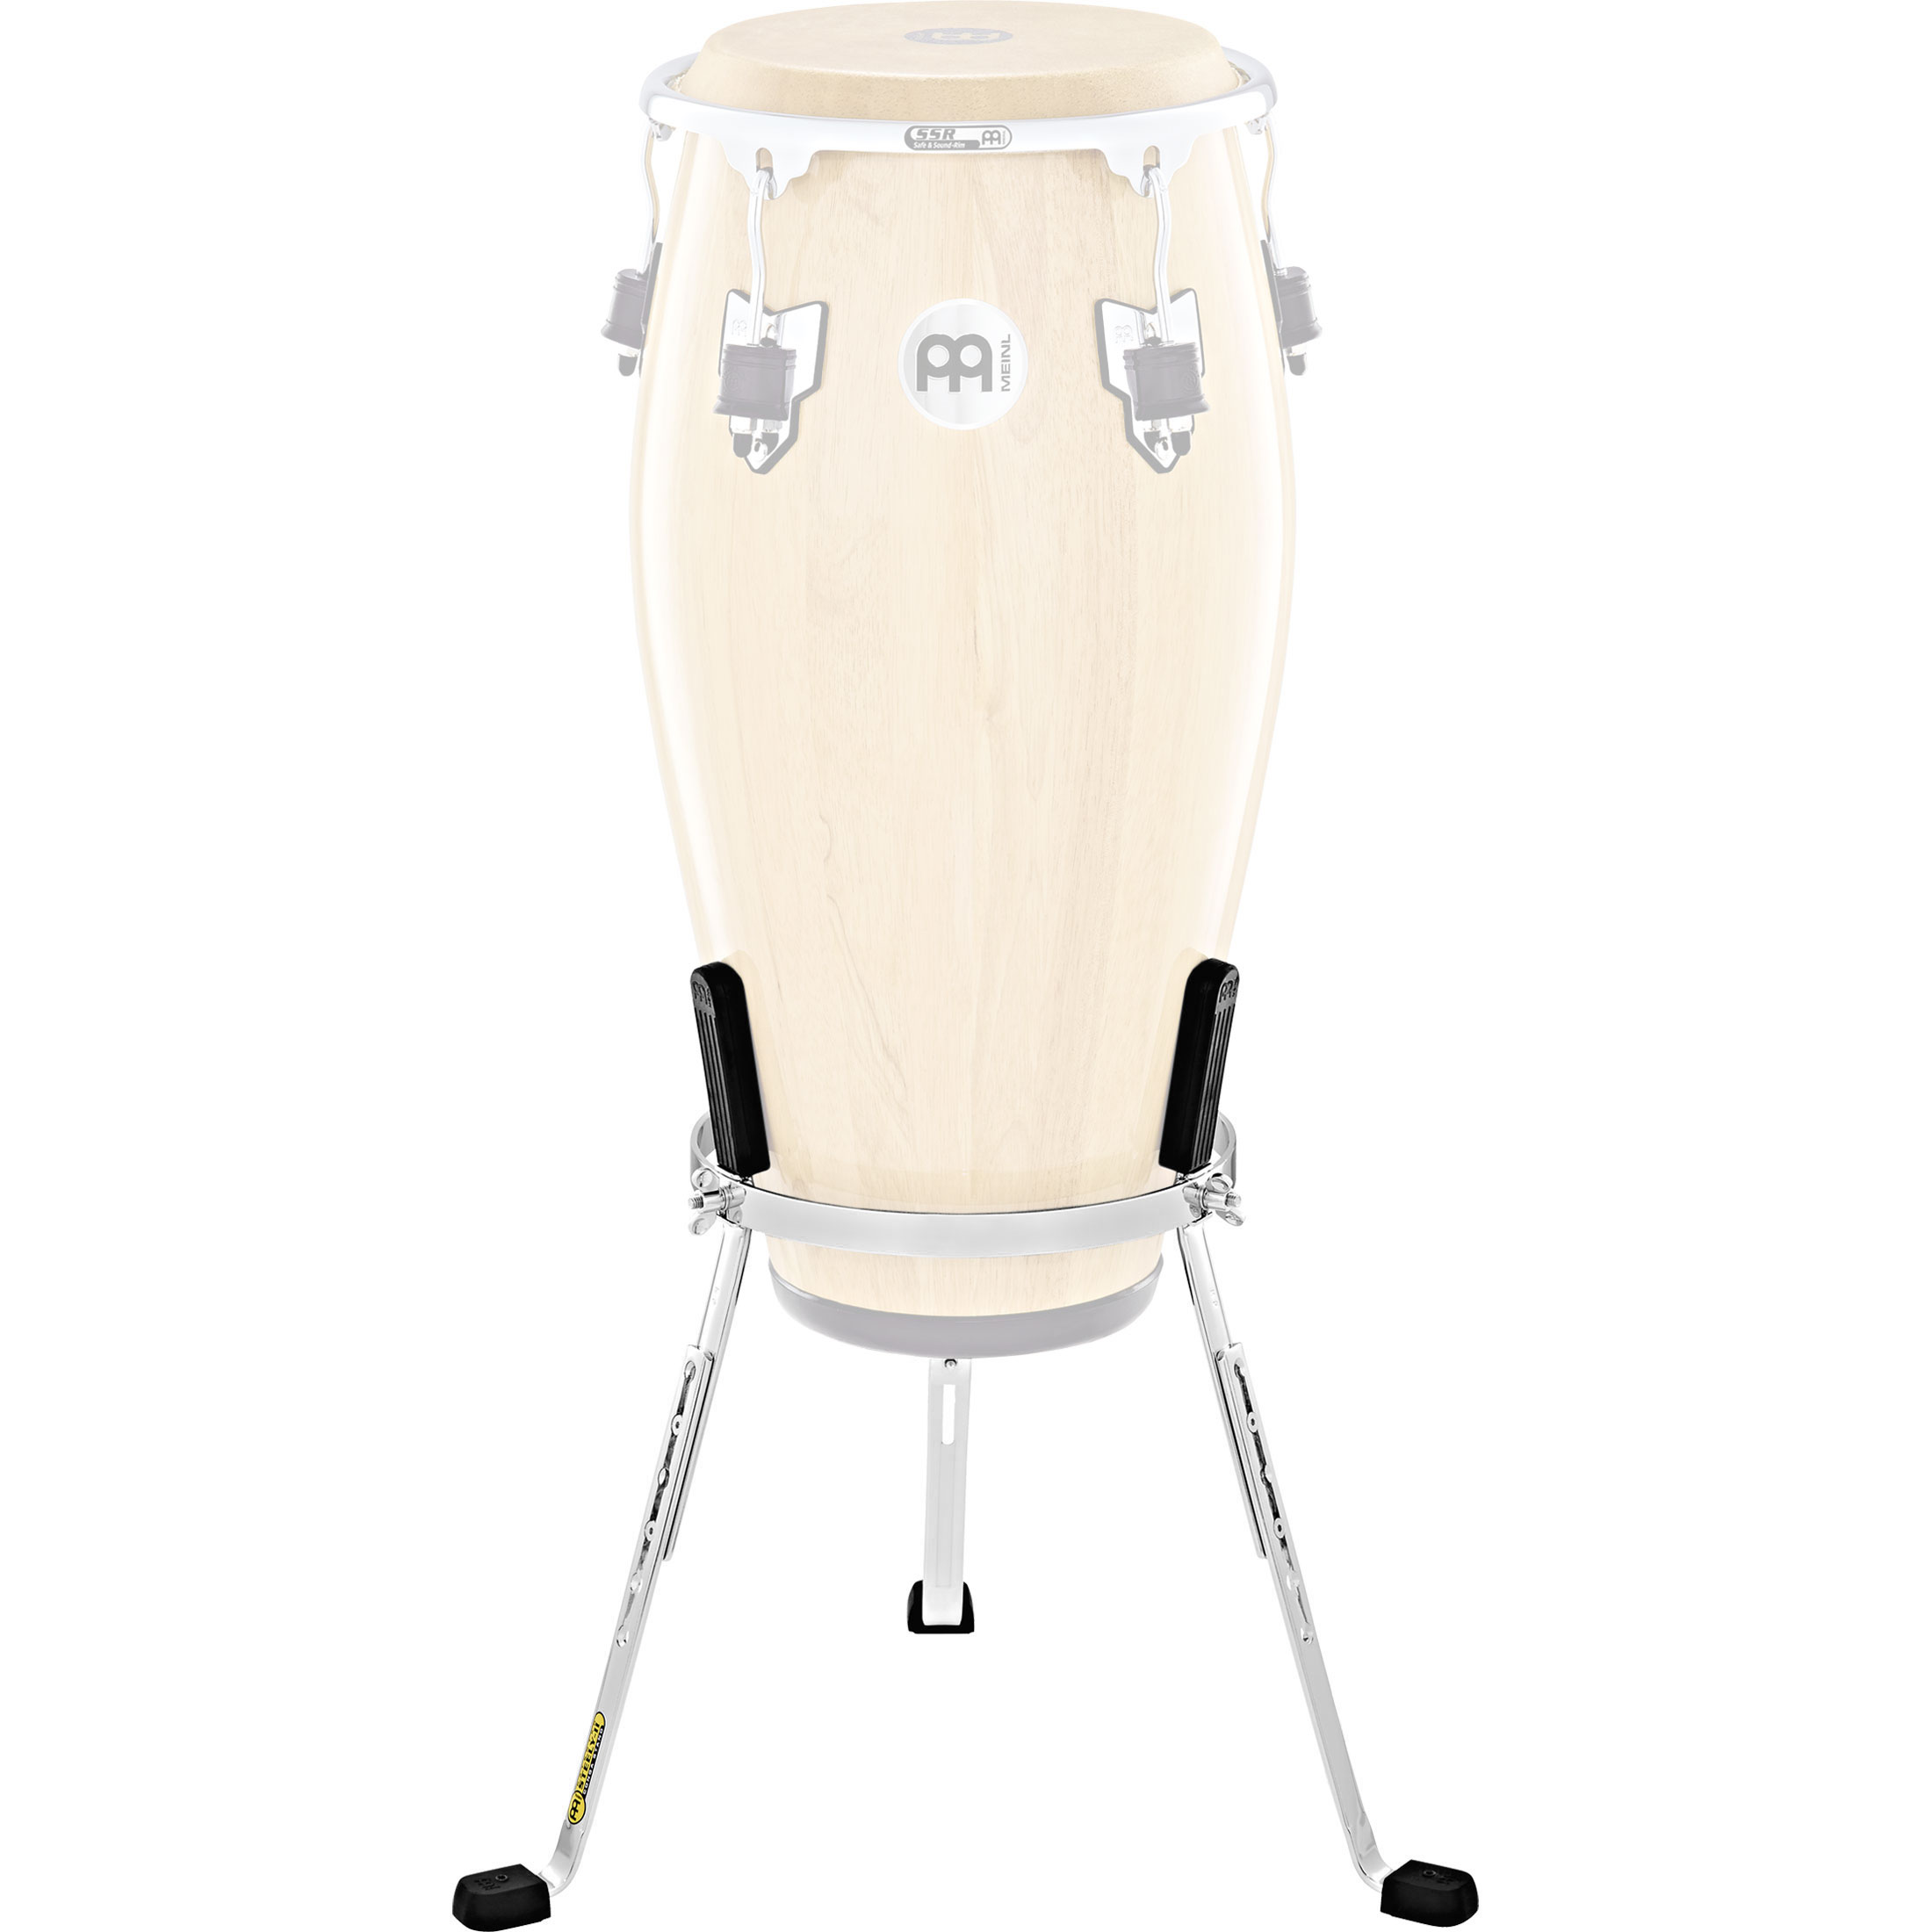 "Meinl 11.75"" Marathon Exclusive Steely II Conga Stand in Chrome"